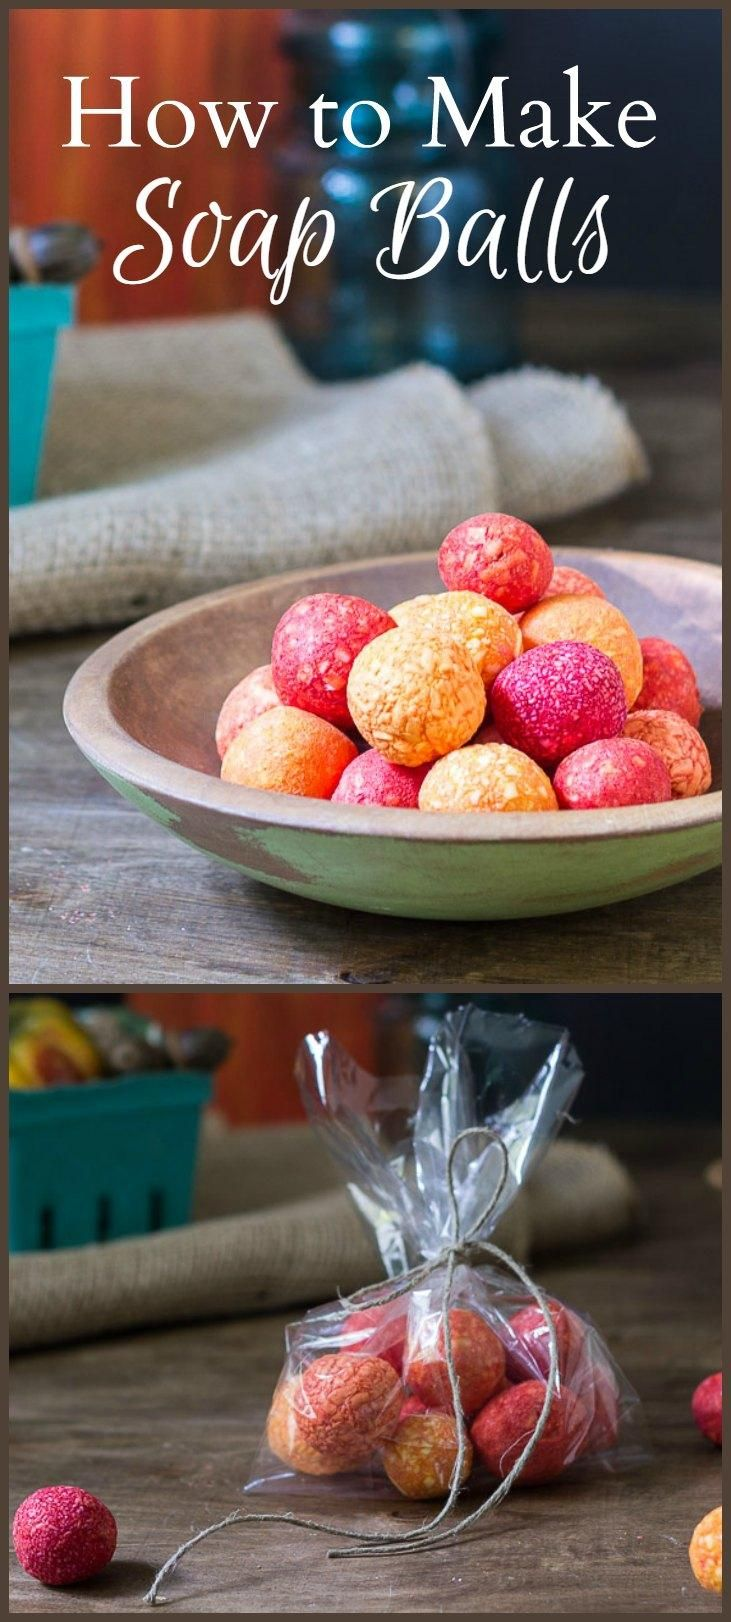 115 best DIY SOAP images on Pinterest | DIY, Ash and Autumn crafts